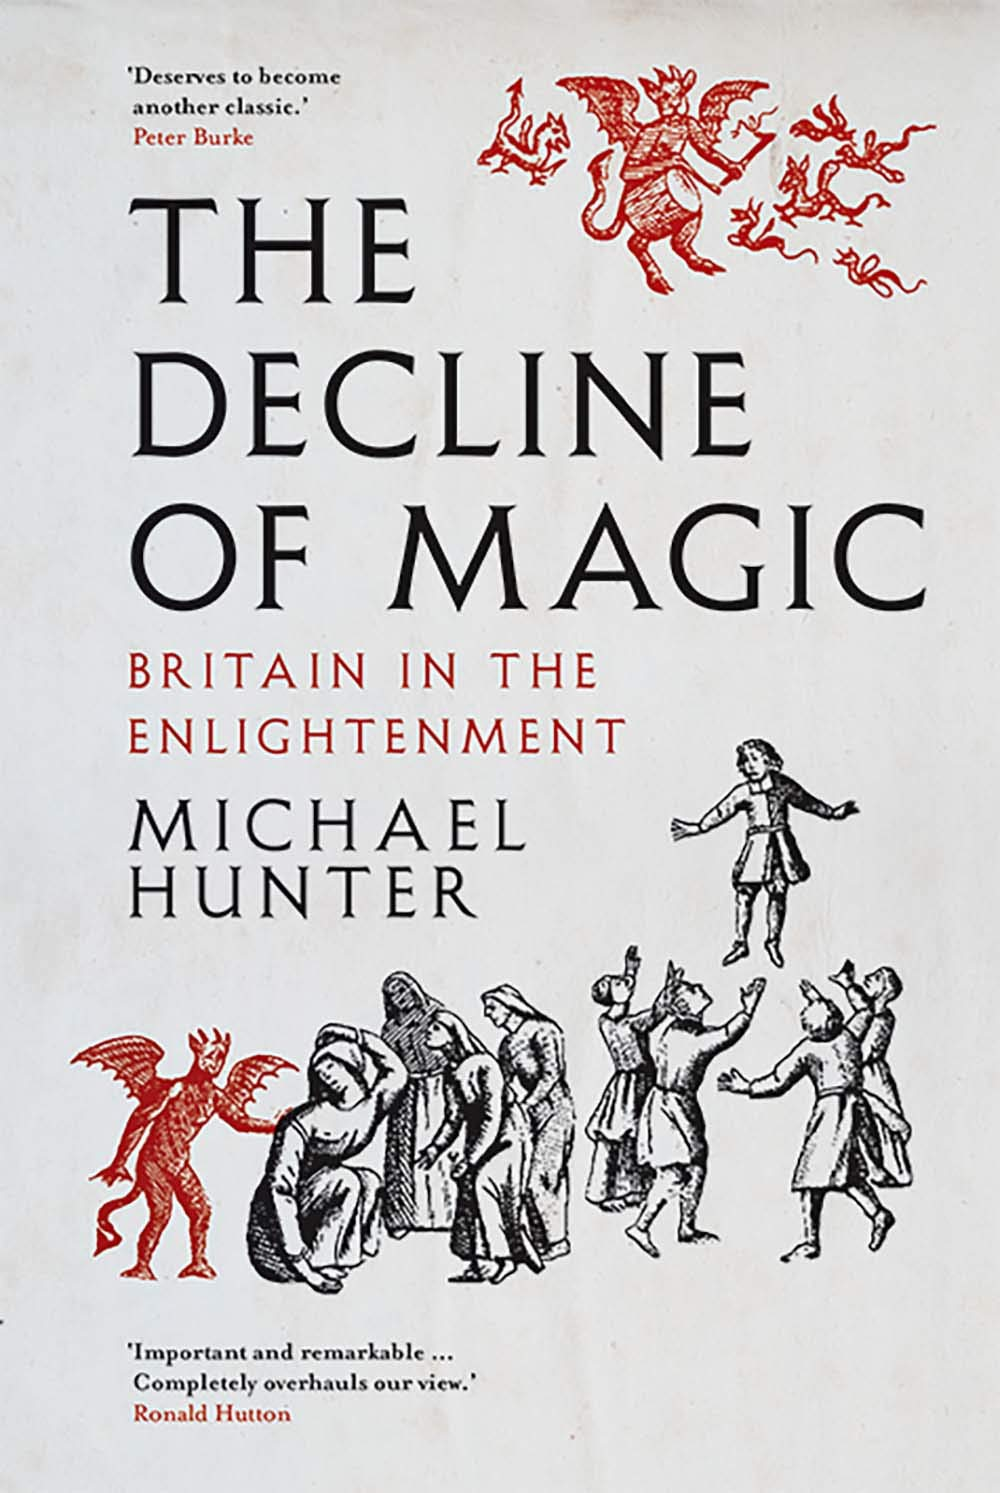 Michael Hunter. The Decline of Magic: Britain in the Enlightenment.